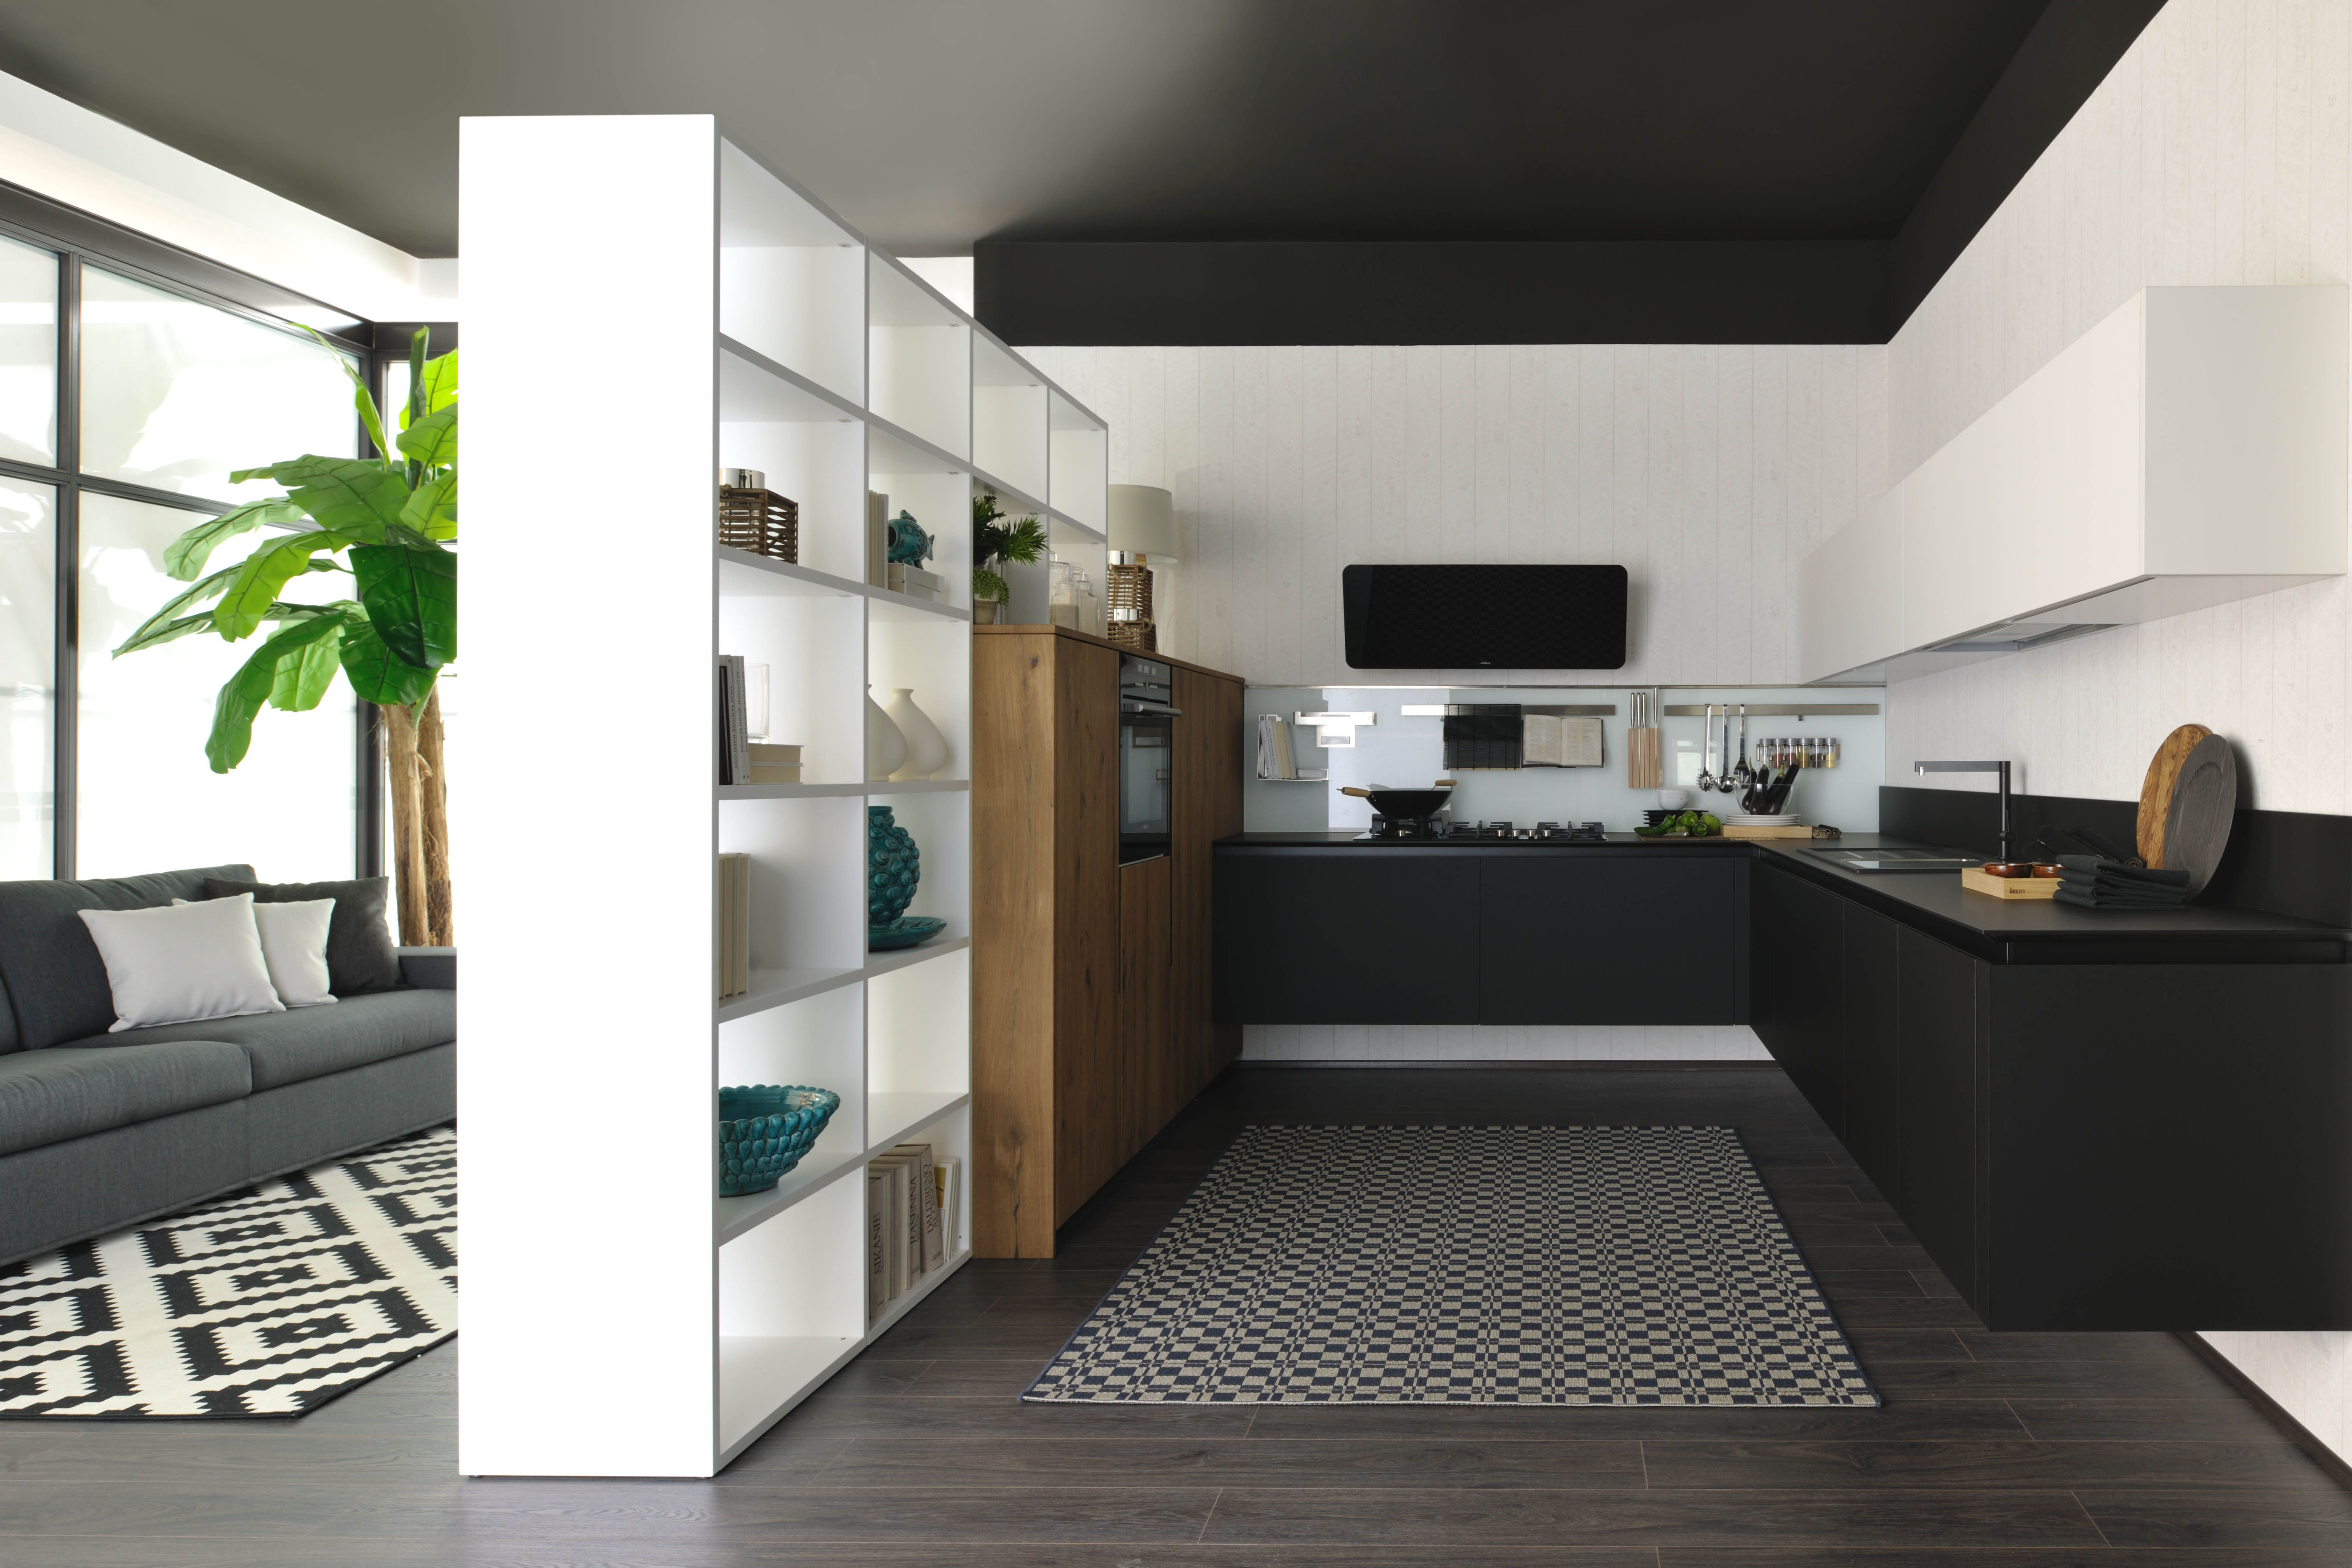 Oltre, the new kitchen concept by Cucine Lube. FENIX NTM Nero Ingo ...